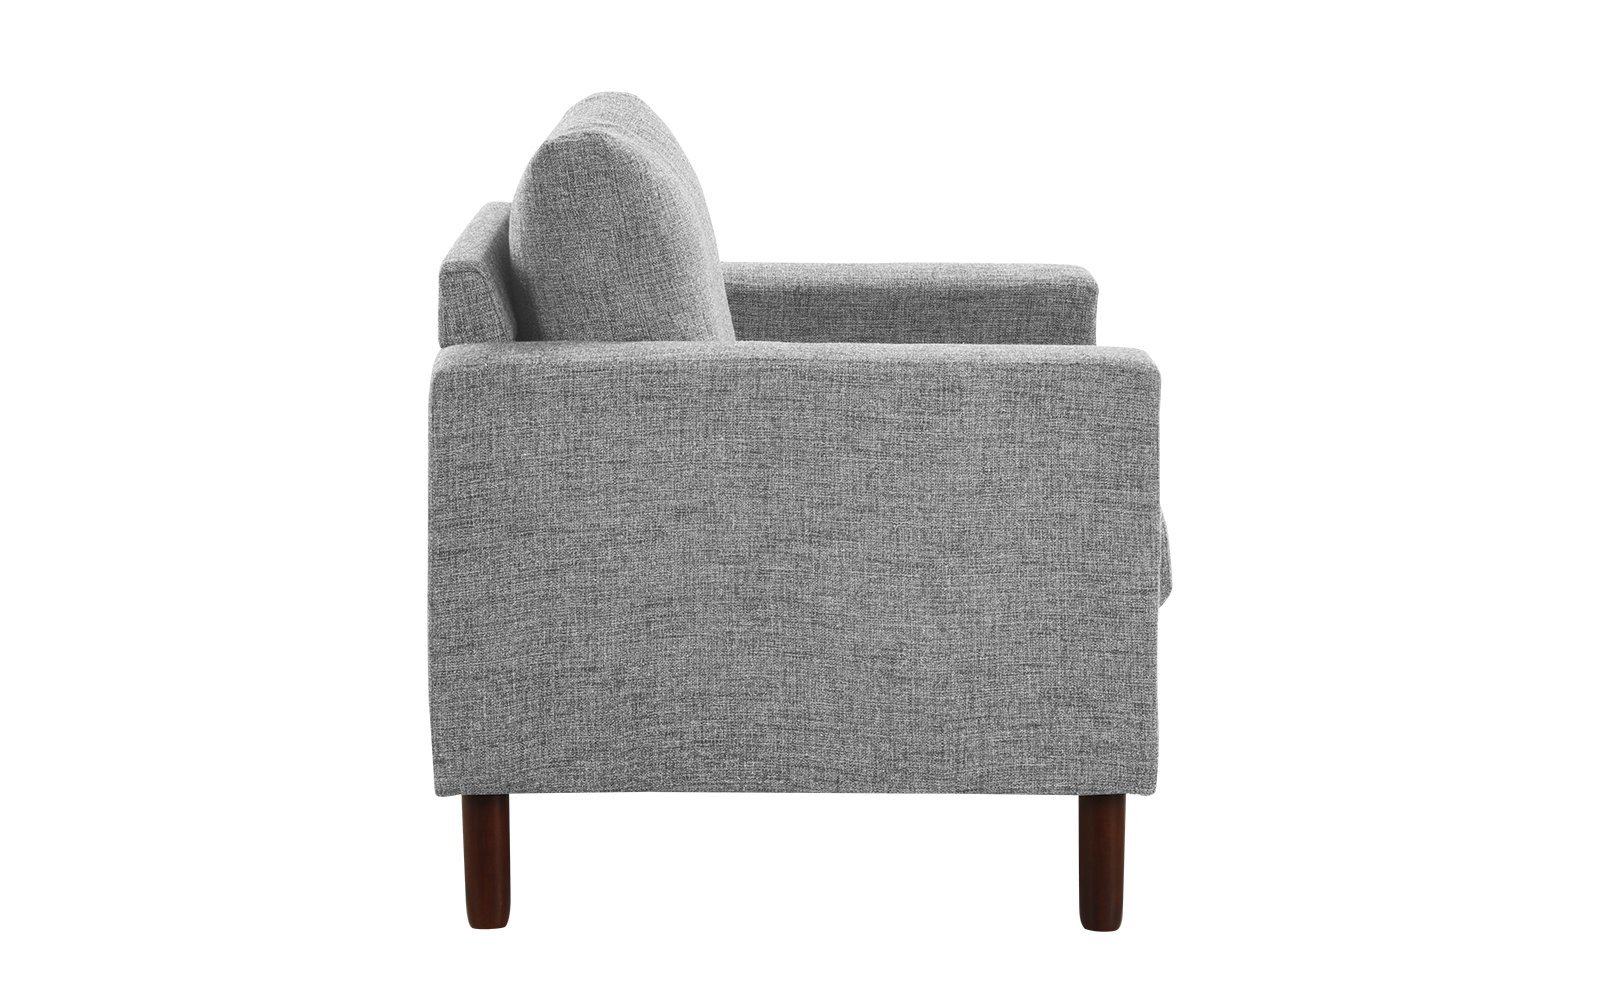 Details About Modern Tufted Linen Fabric Armchair W Wooden Legs Living Room Chair Light Grey